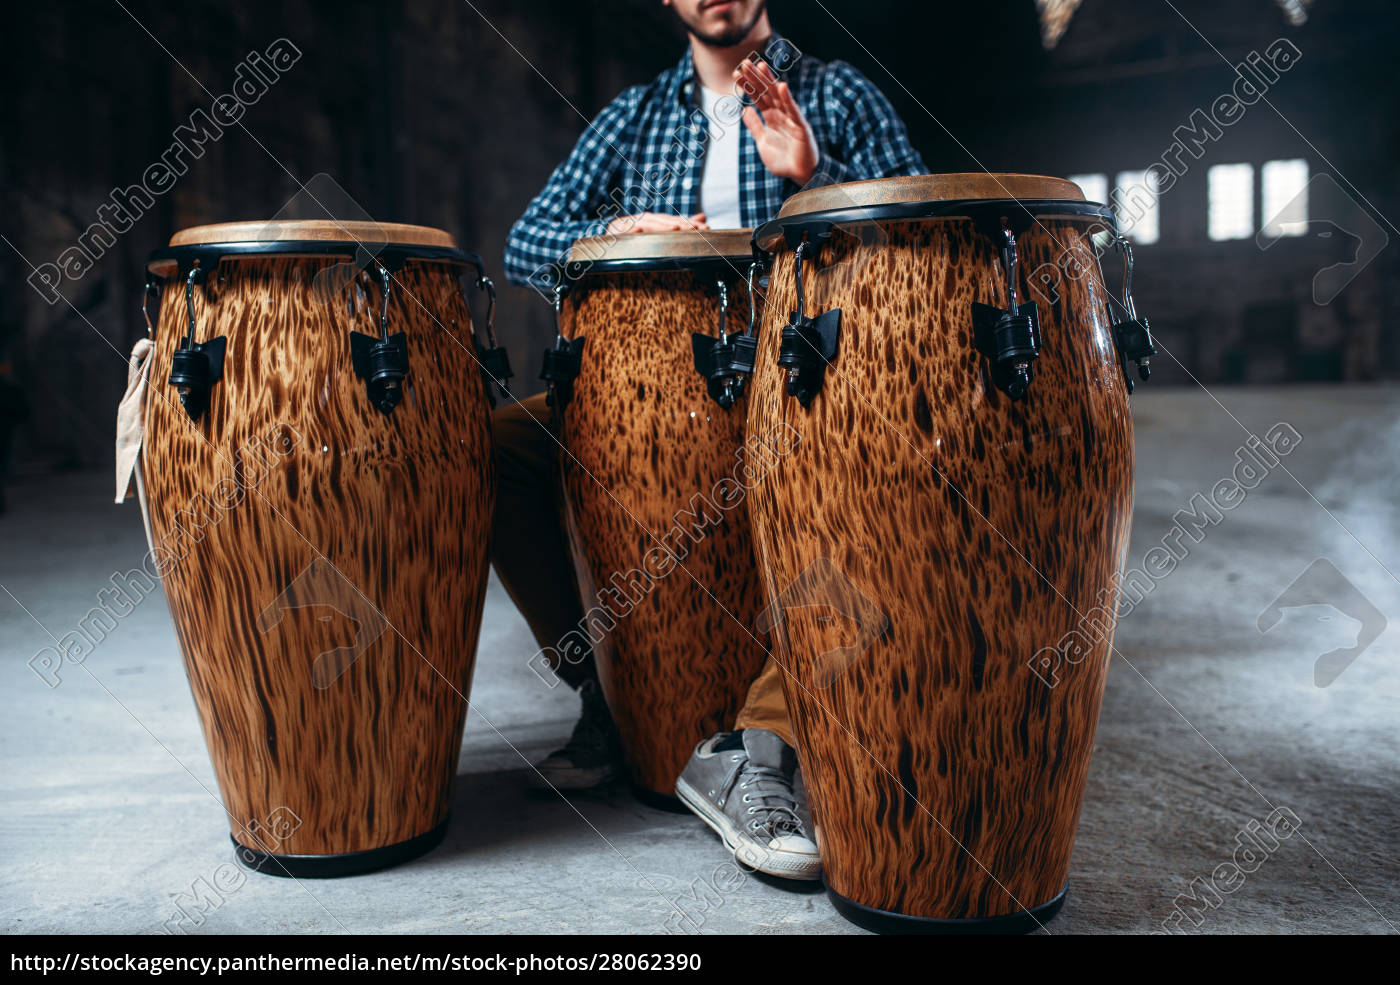 male, drummer, plays, on, wooden, drums - 28062390